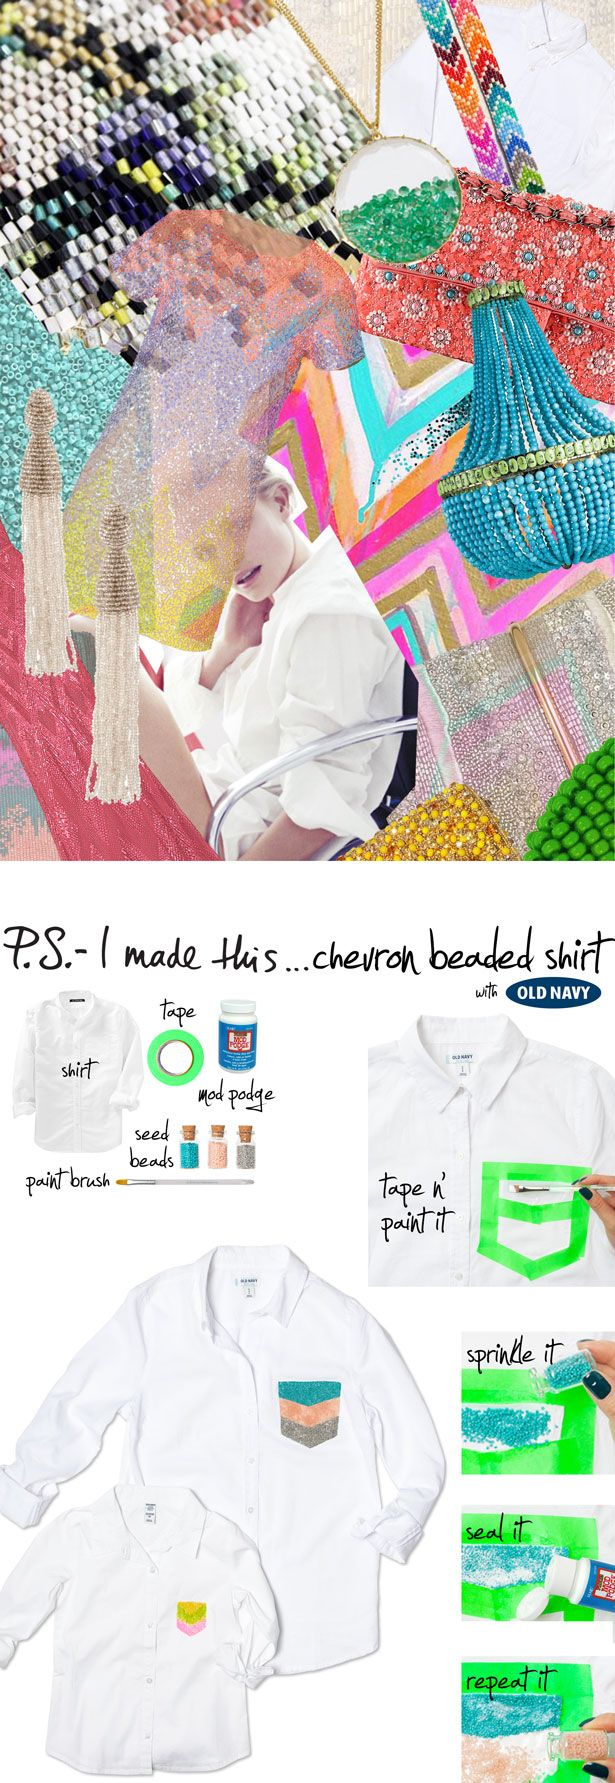 P.S.-I made this...Chevron Beaded Shirt with @oldnavy #PSxOldNavy #PSIMADETHIS #INSPIRATION